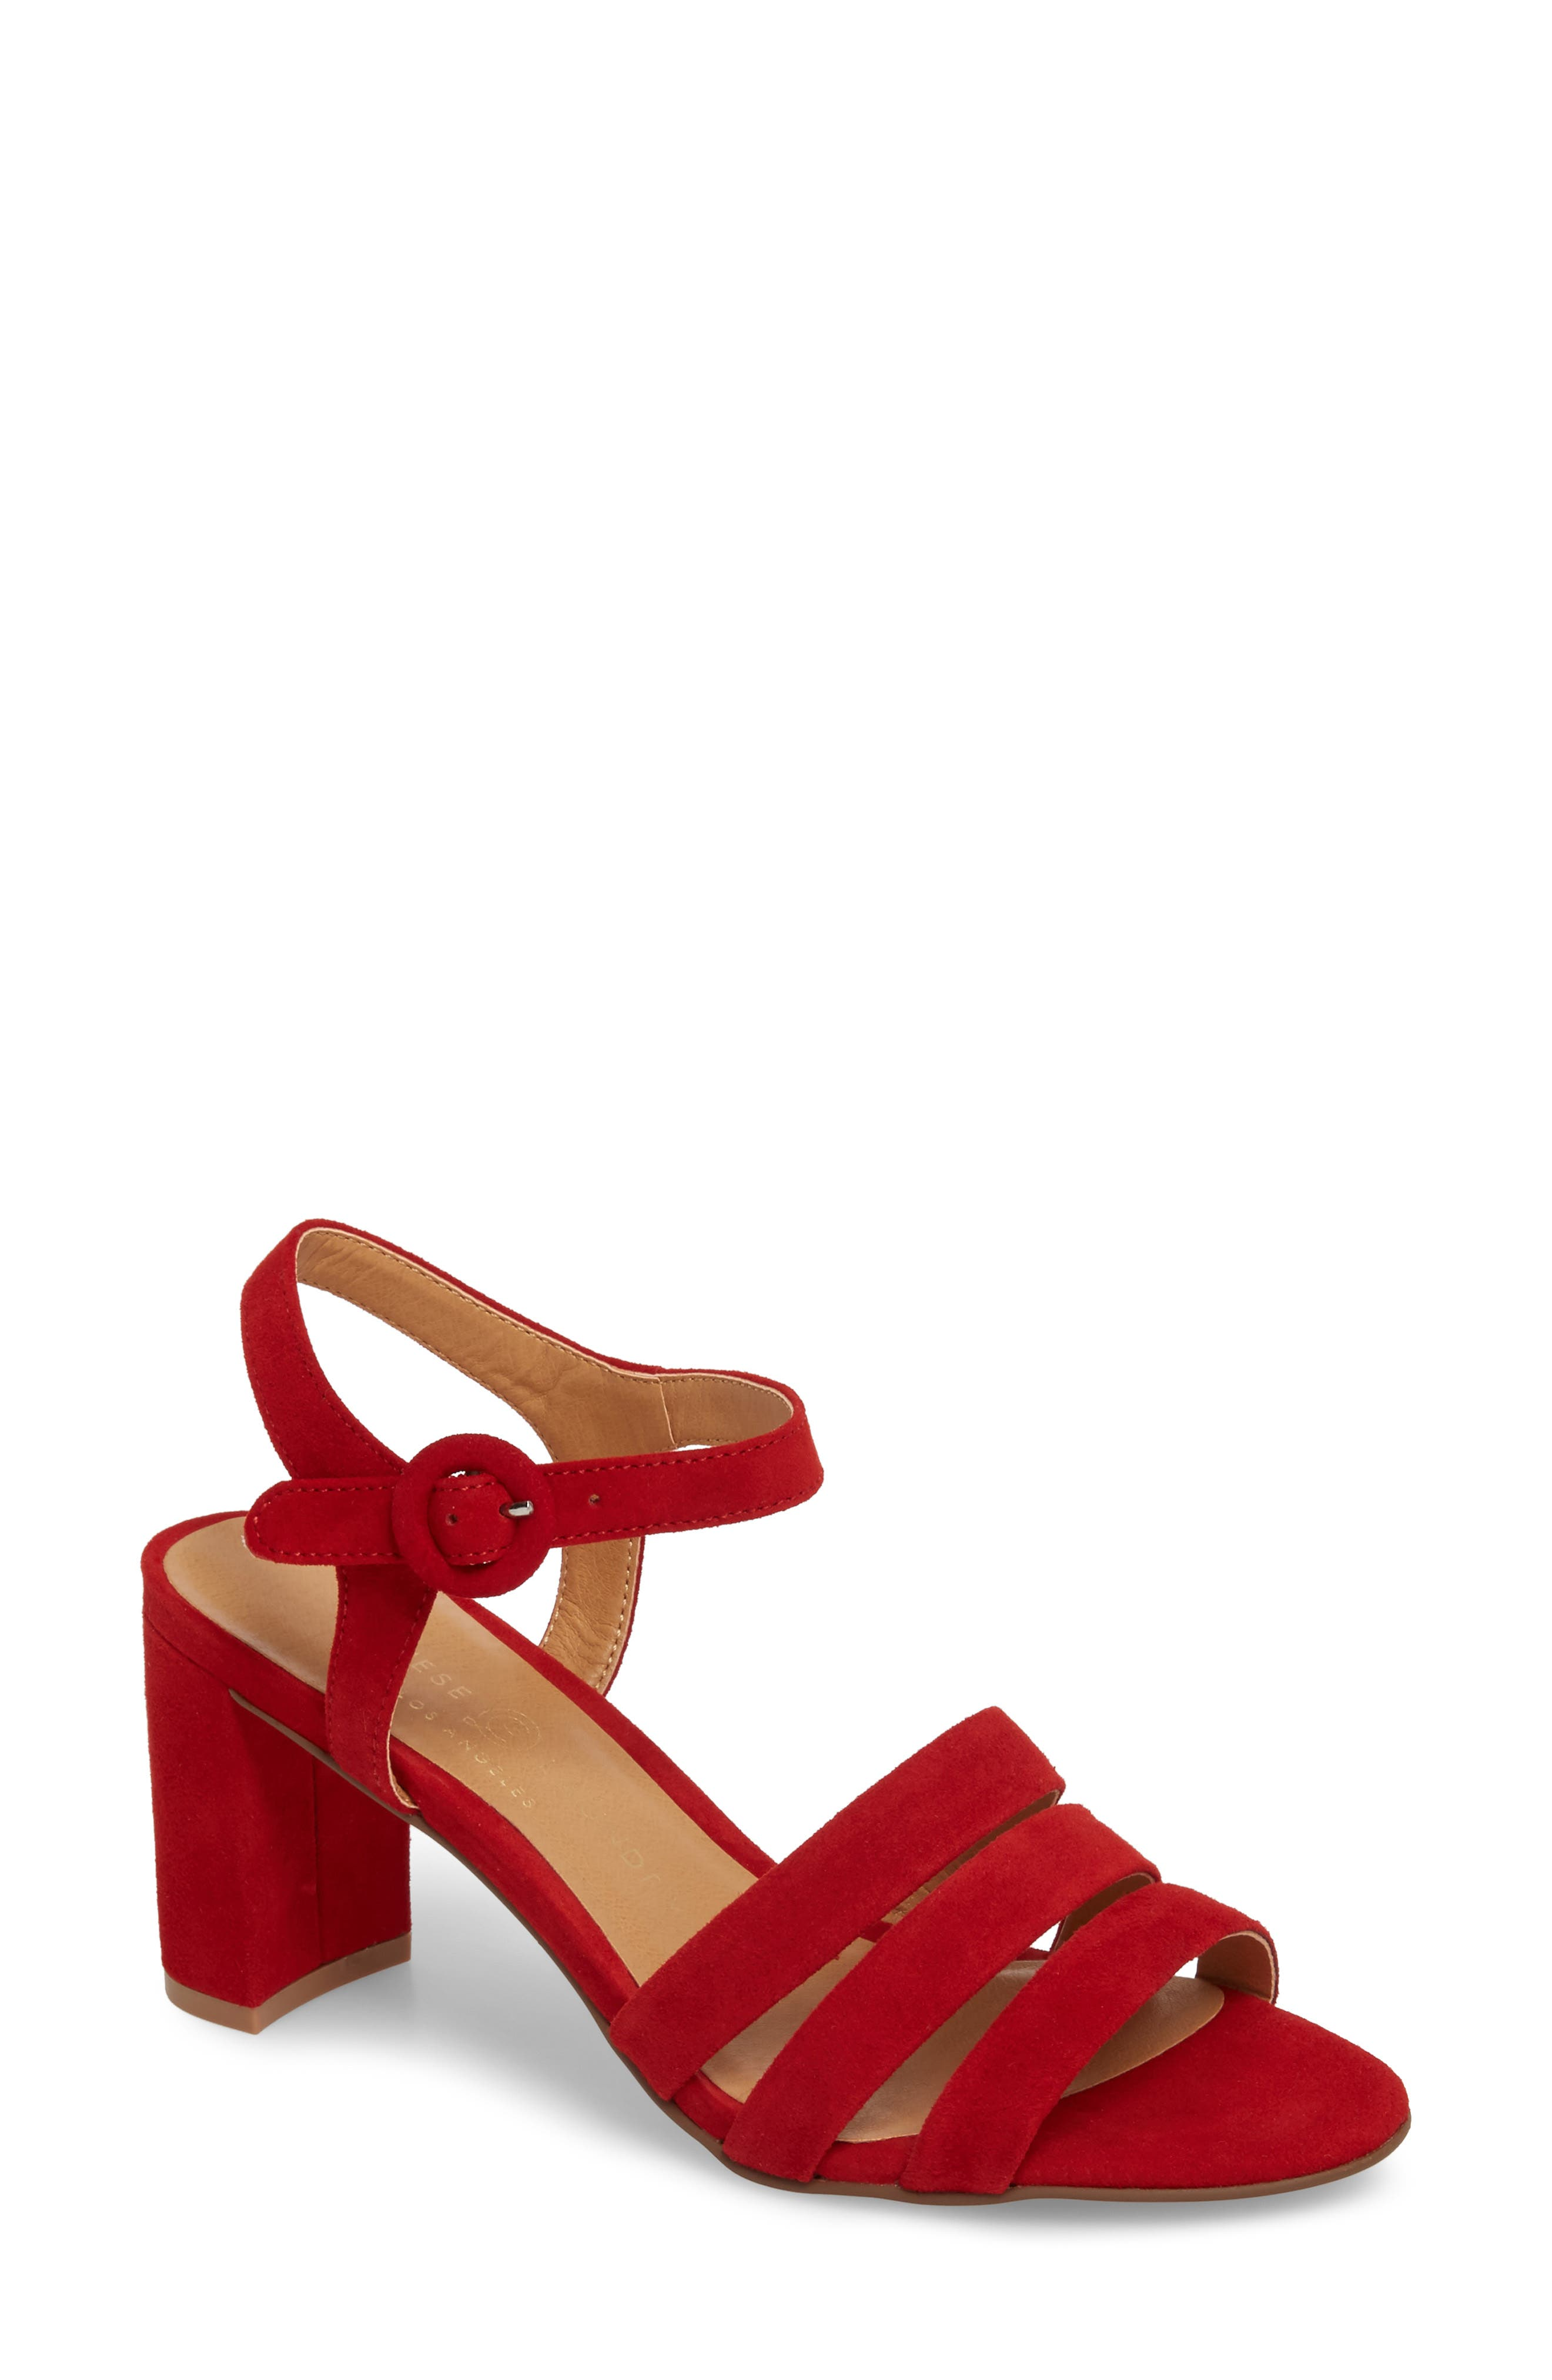 Ryden Strappy Sandal,                             Main thumbnail 1, color,                             Red